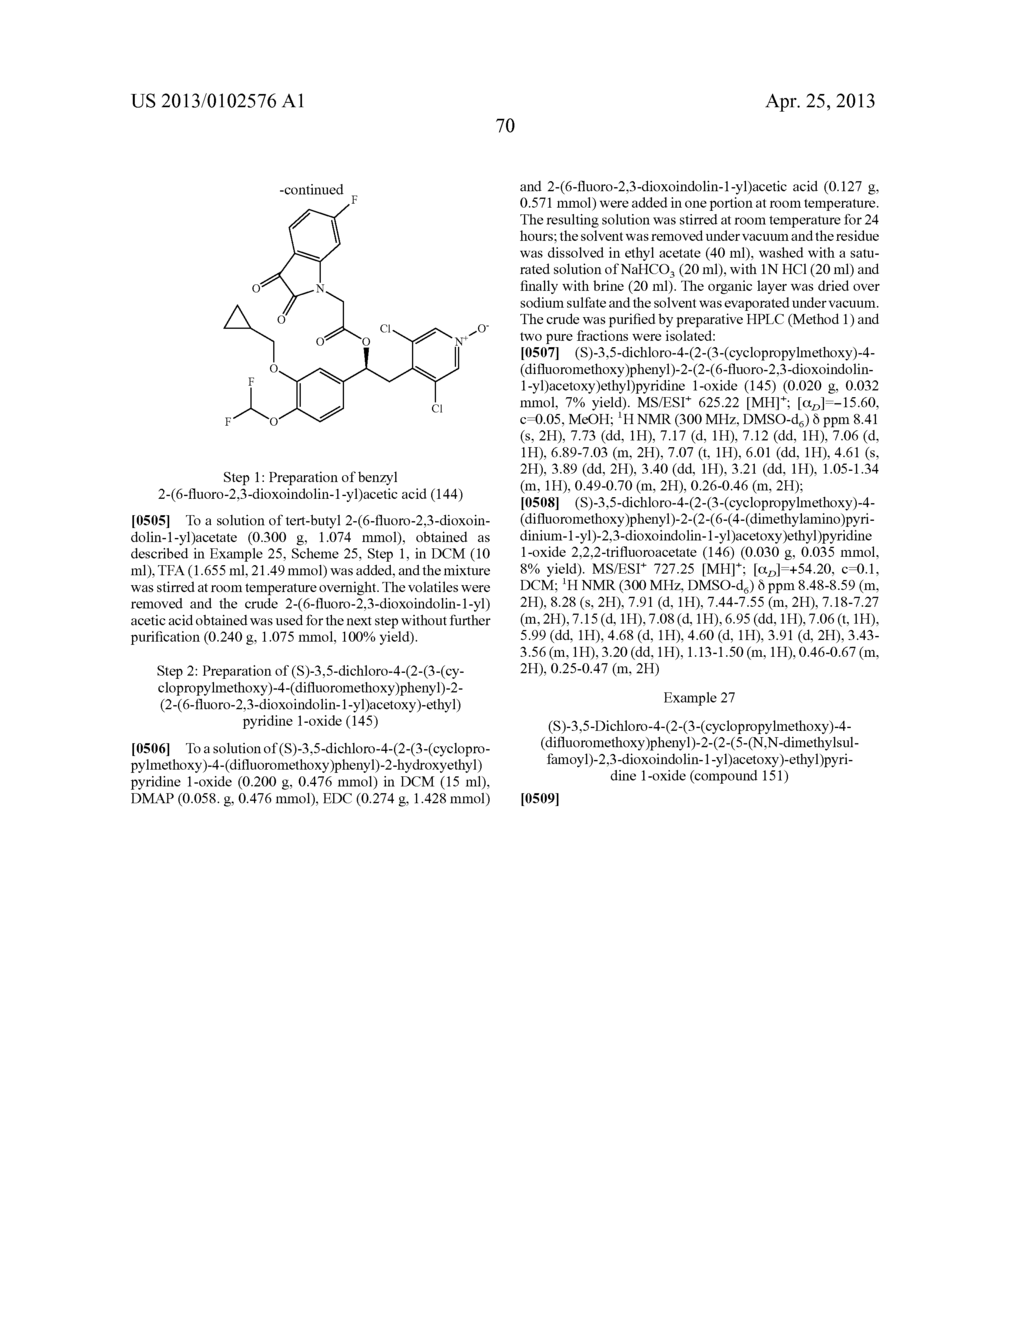 DERIVATIVES OF 1-PHENYL-2-PYRIDINYL ALKYL ALCOHOLS AS PHOSPHODIESTERASE     INHIBITORS - diagram, schematic, and image 71